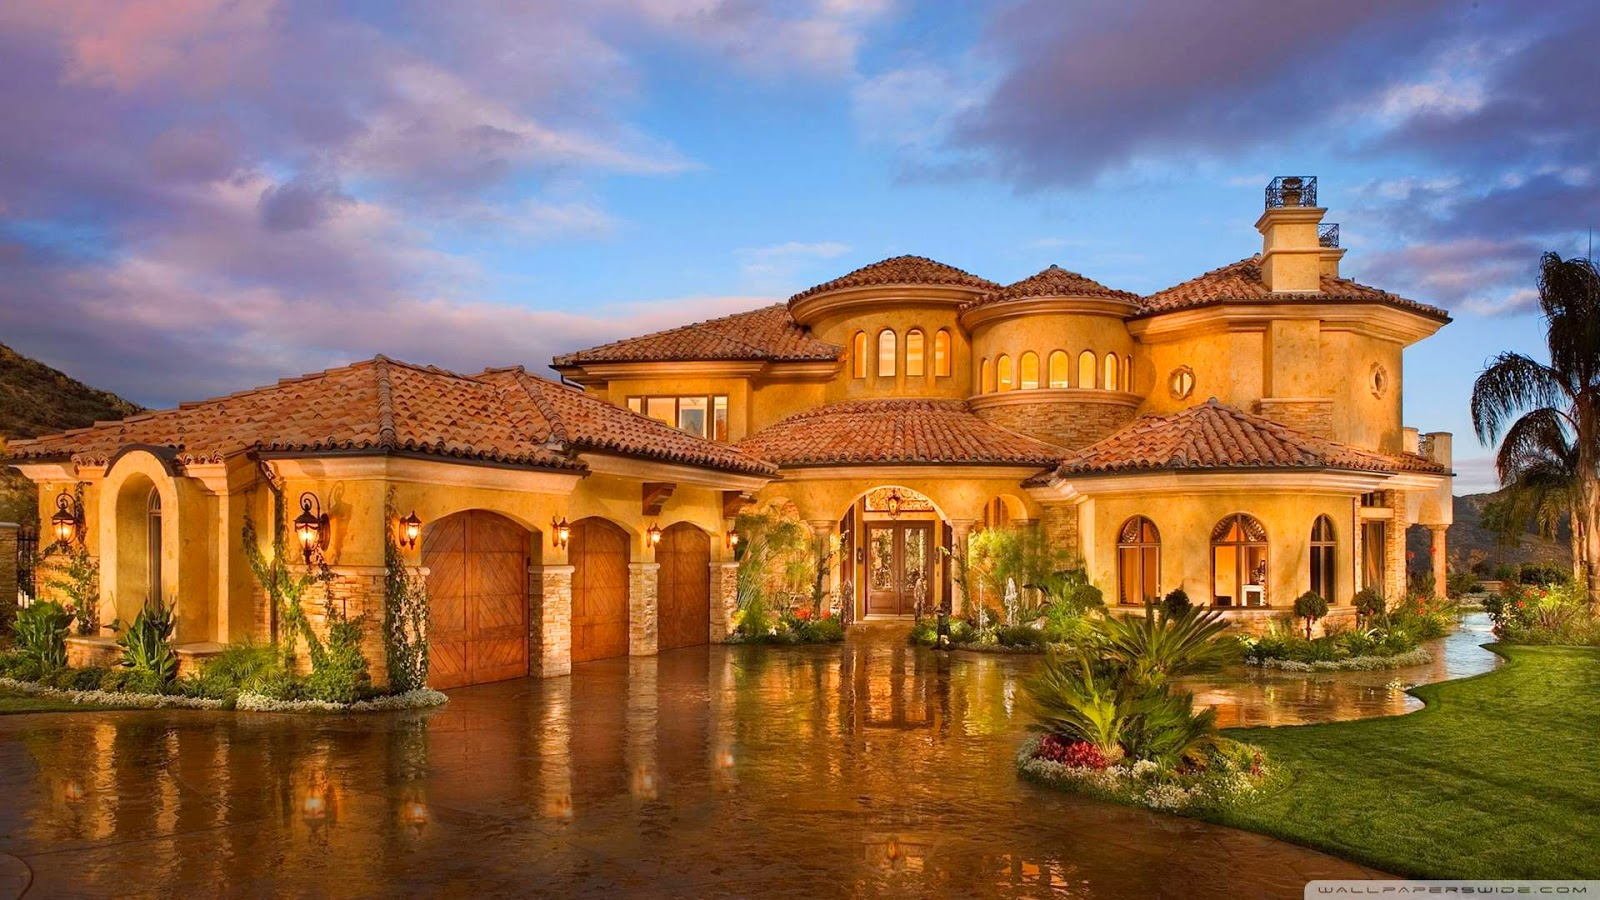 Dhdwallpapers - Download Hd Wallpapers: Free Download Luxury House Hd Wallpapers